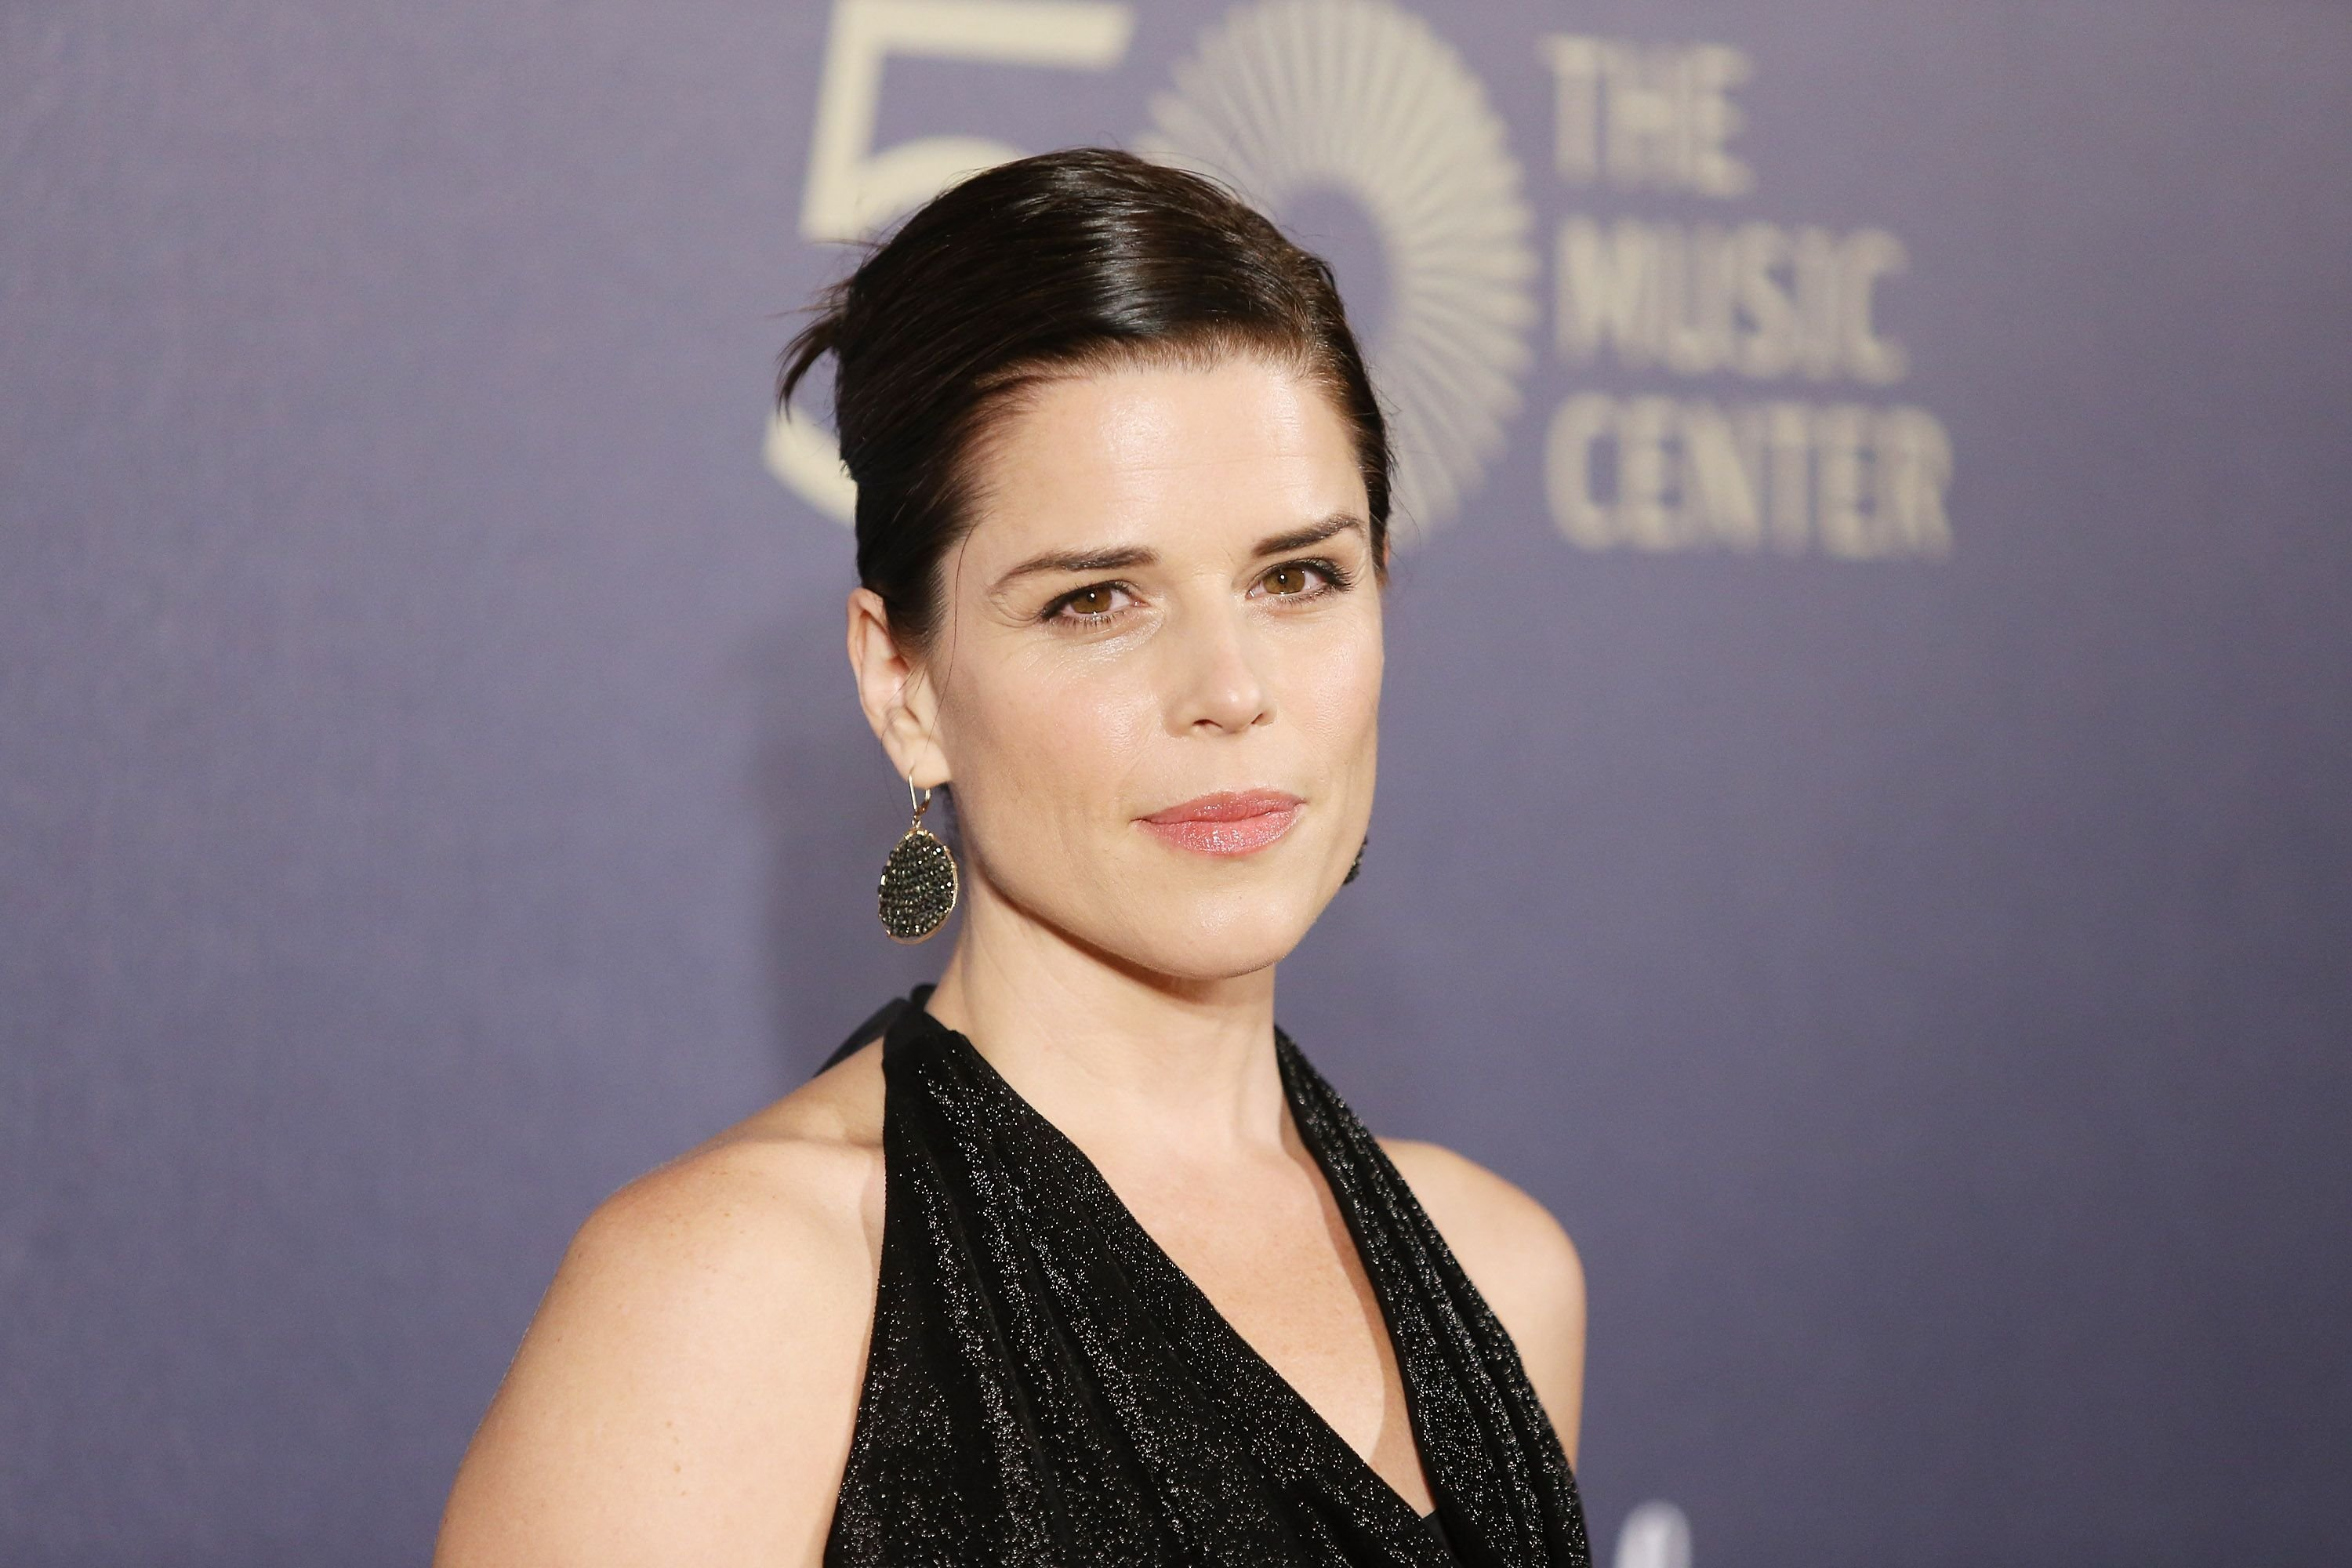 Neve Campbell at The Music Center's 50th Anniversary Spectacular in 2014 in Los Angeles, California | Source: Getty Images